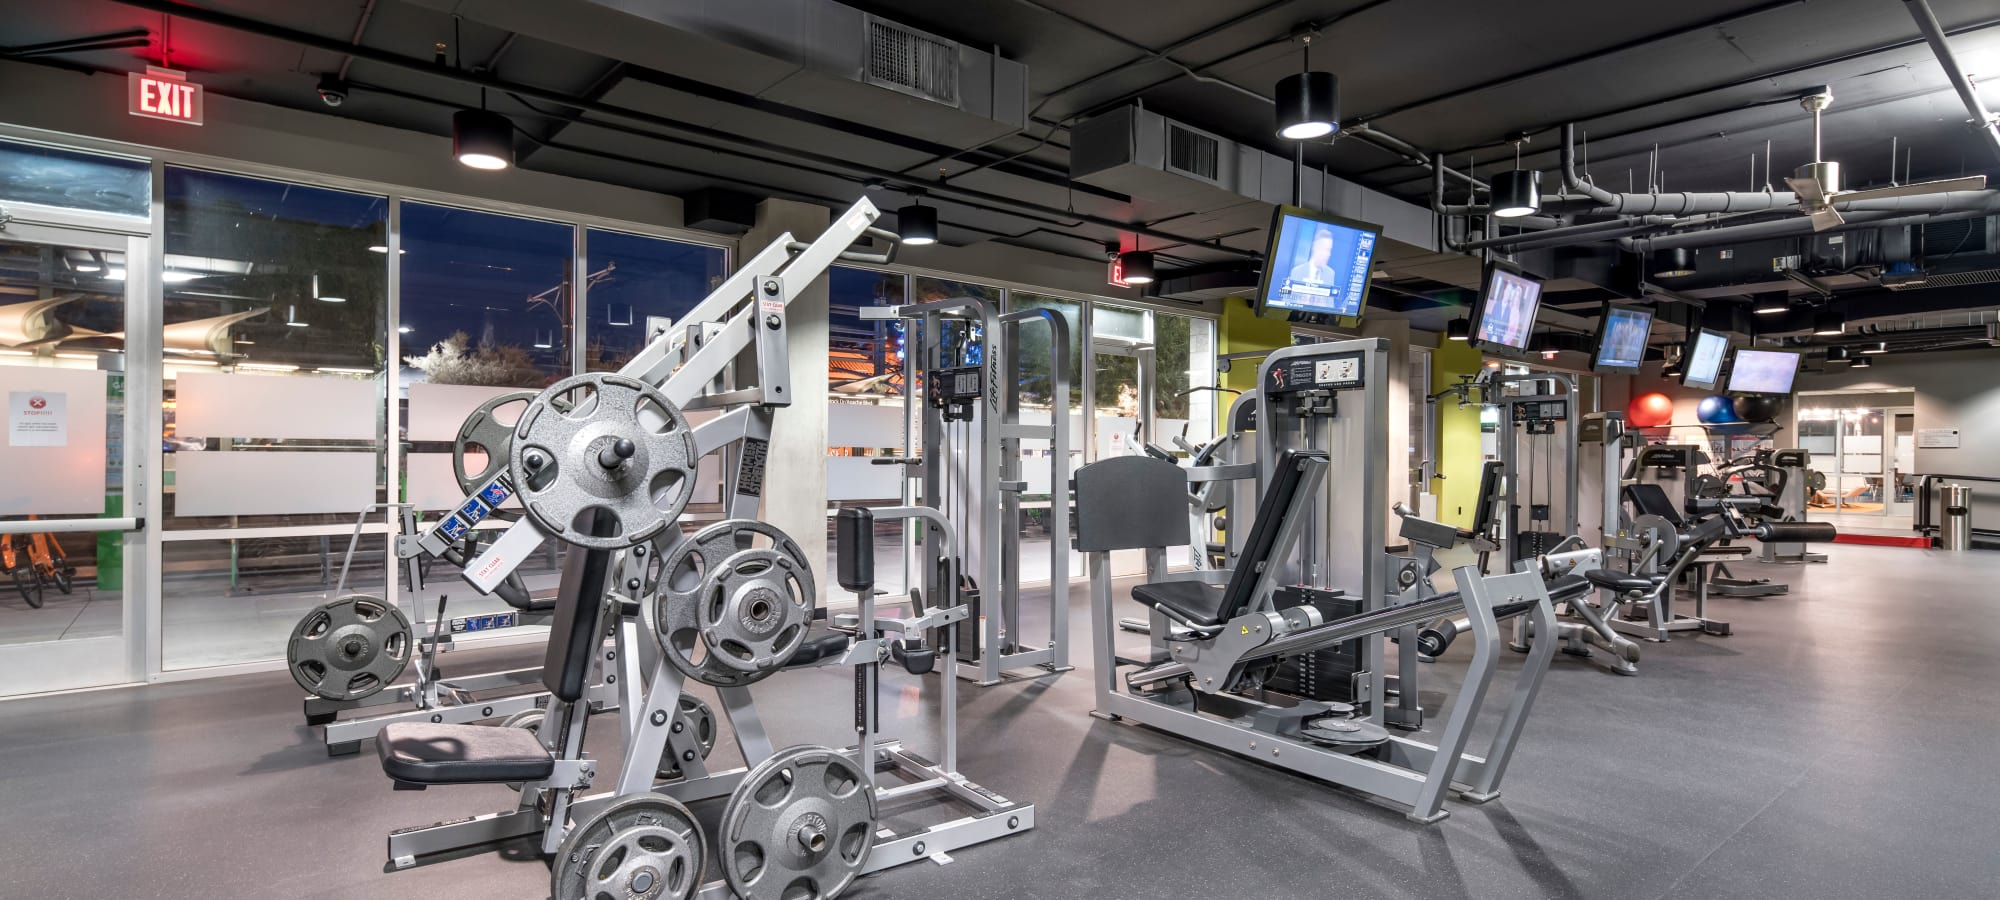 Up-to-date community fitness center at Tempe Metro in Tempe, Arizona